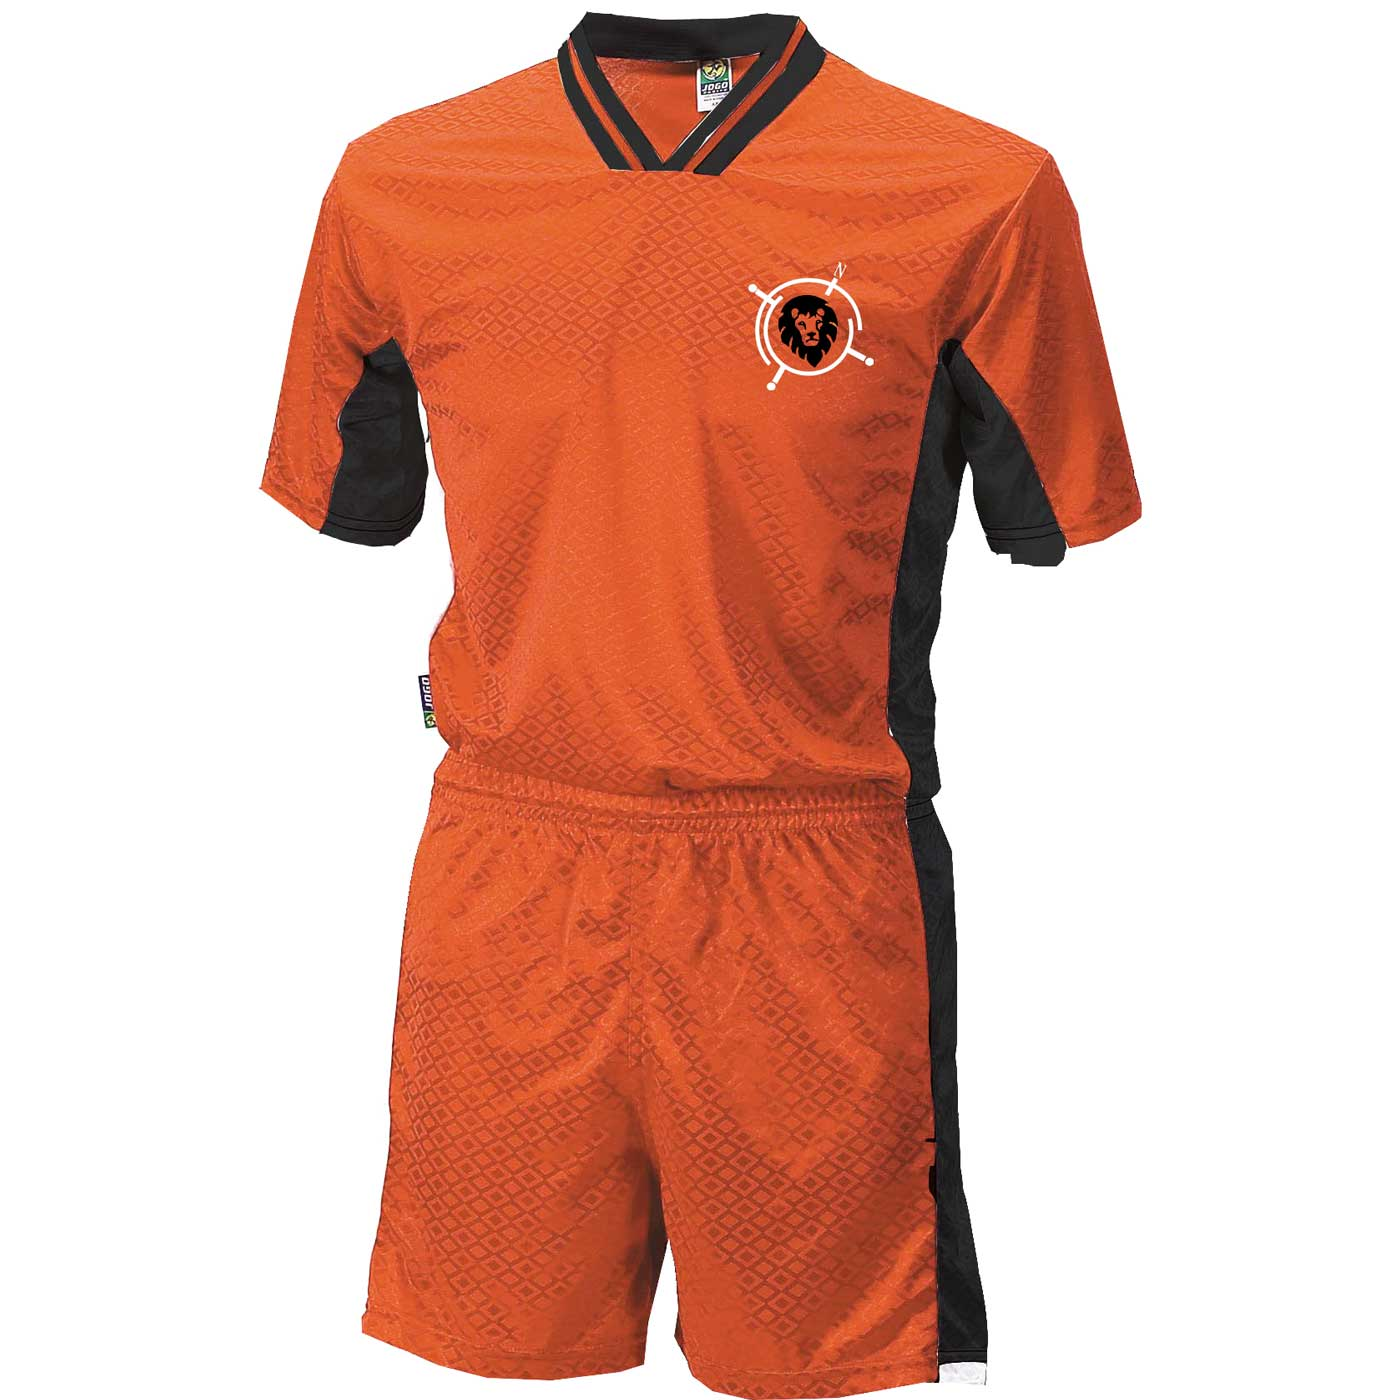 SOCCER UNIFORM DESIGN Safari Restaurant Brand Design